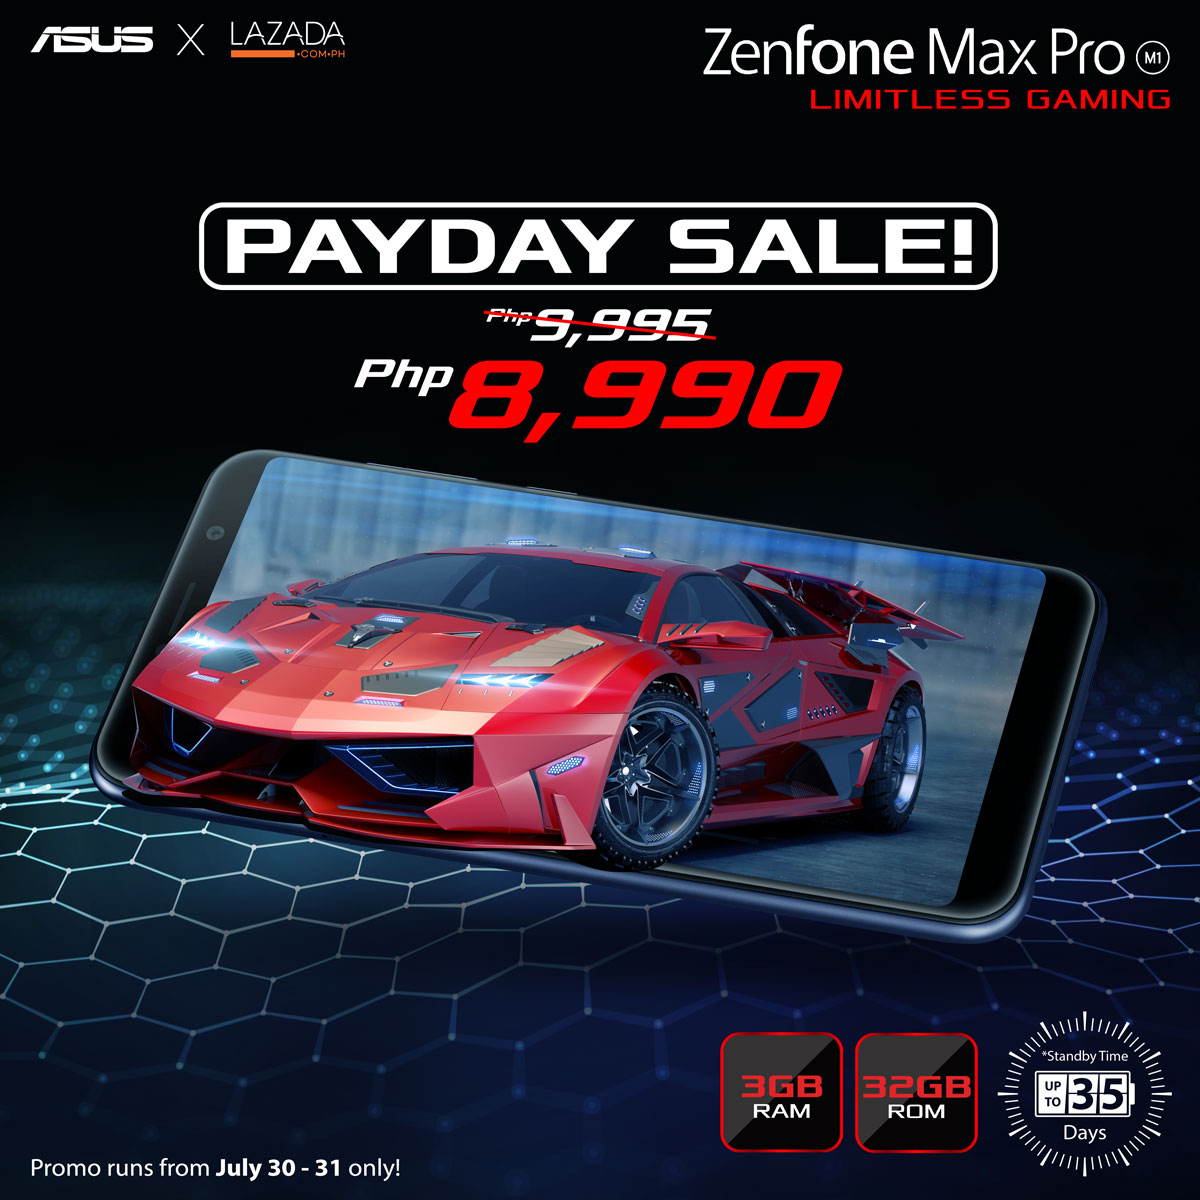 ZenFone Max Pro 3GB for PHP 8,990